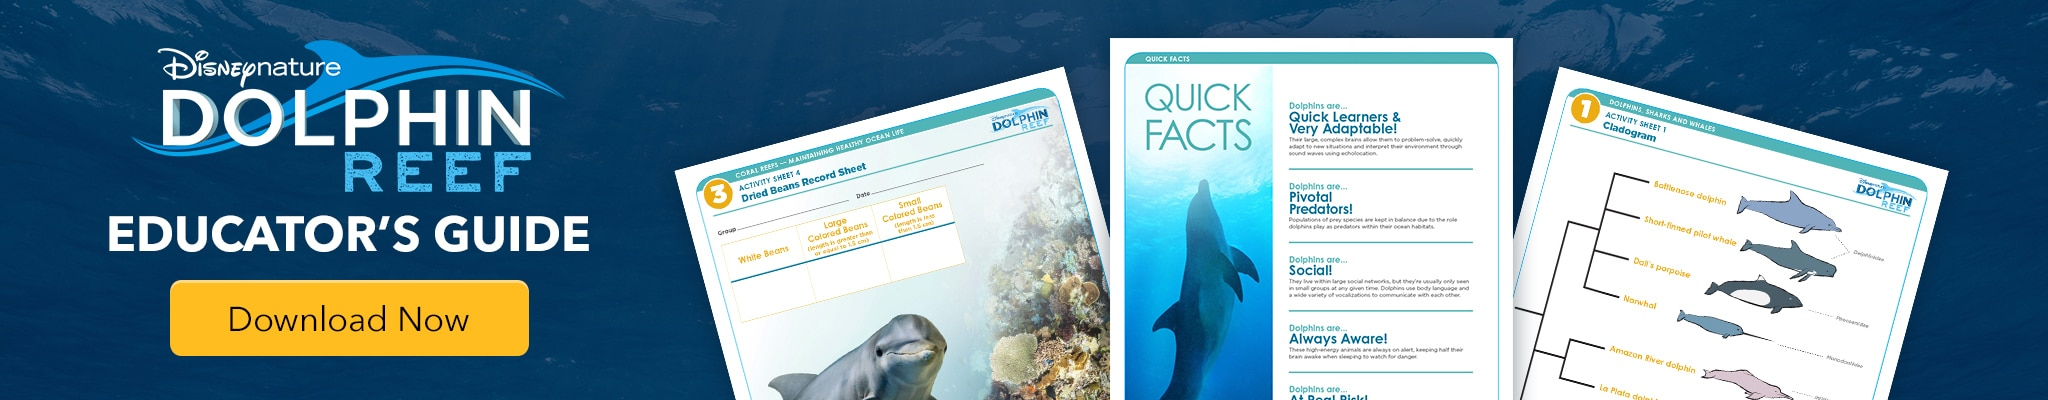 Disneynature Dolphin Reef - Educator's Guide - Download Now